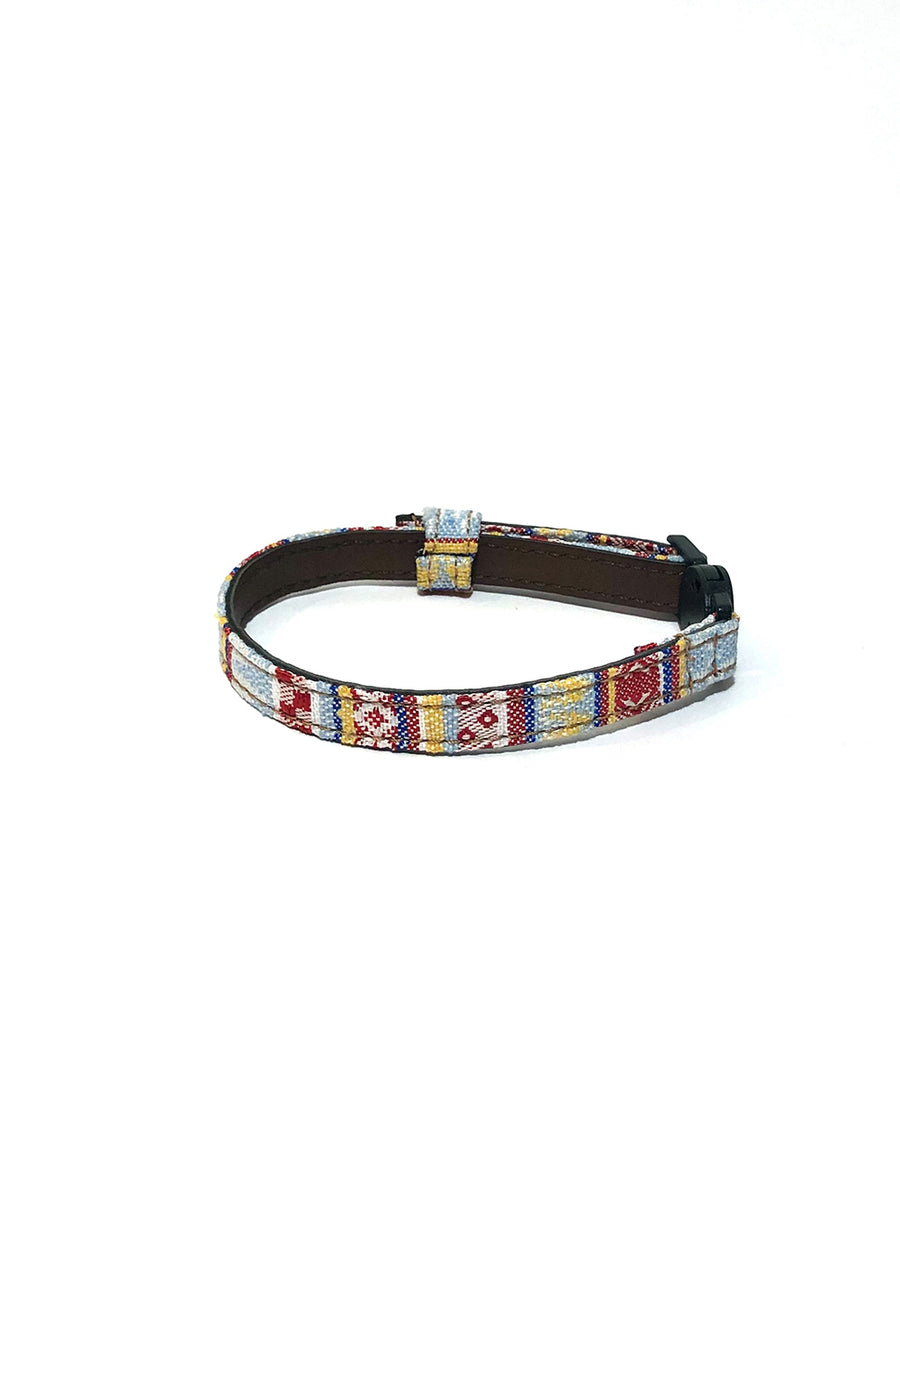 Collar Gato Summer Colores